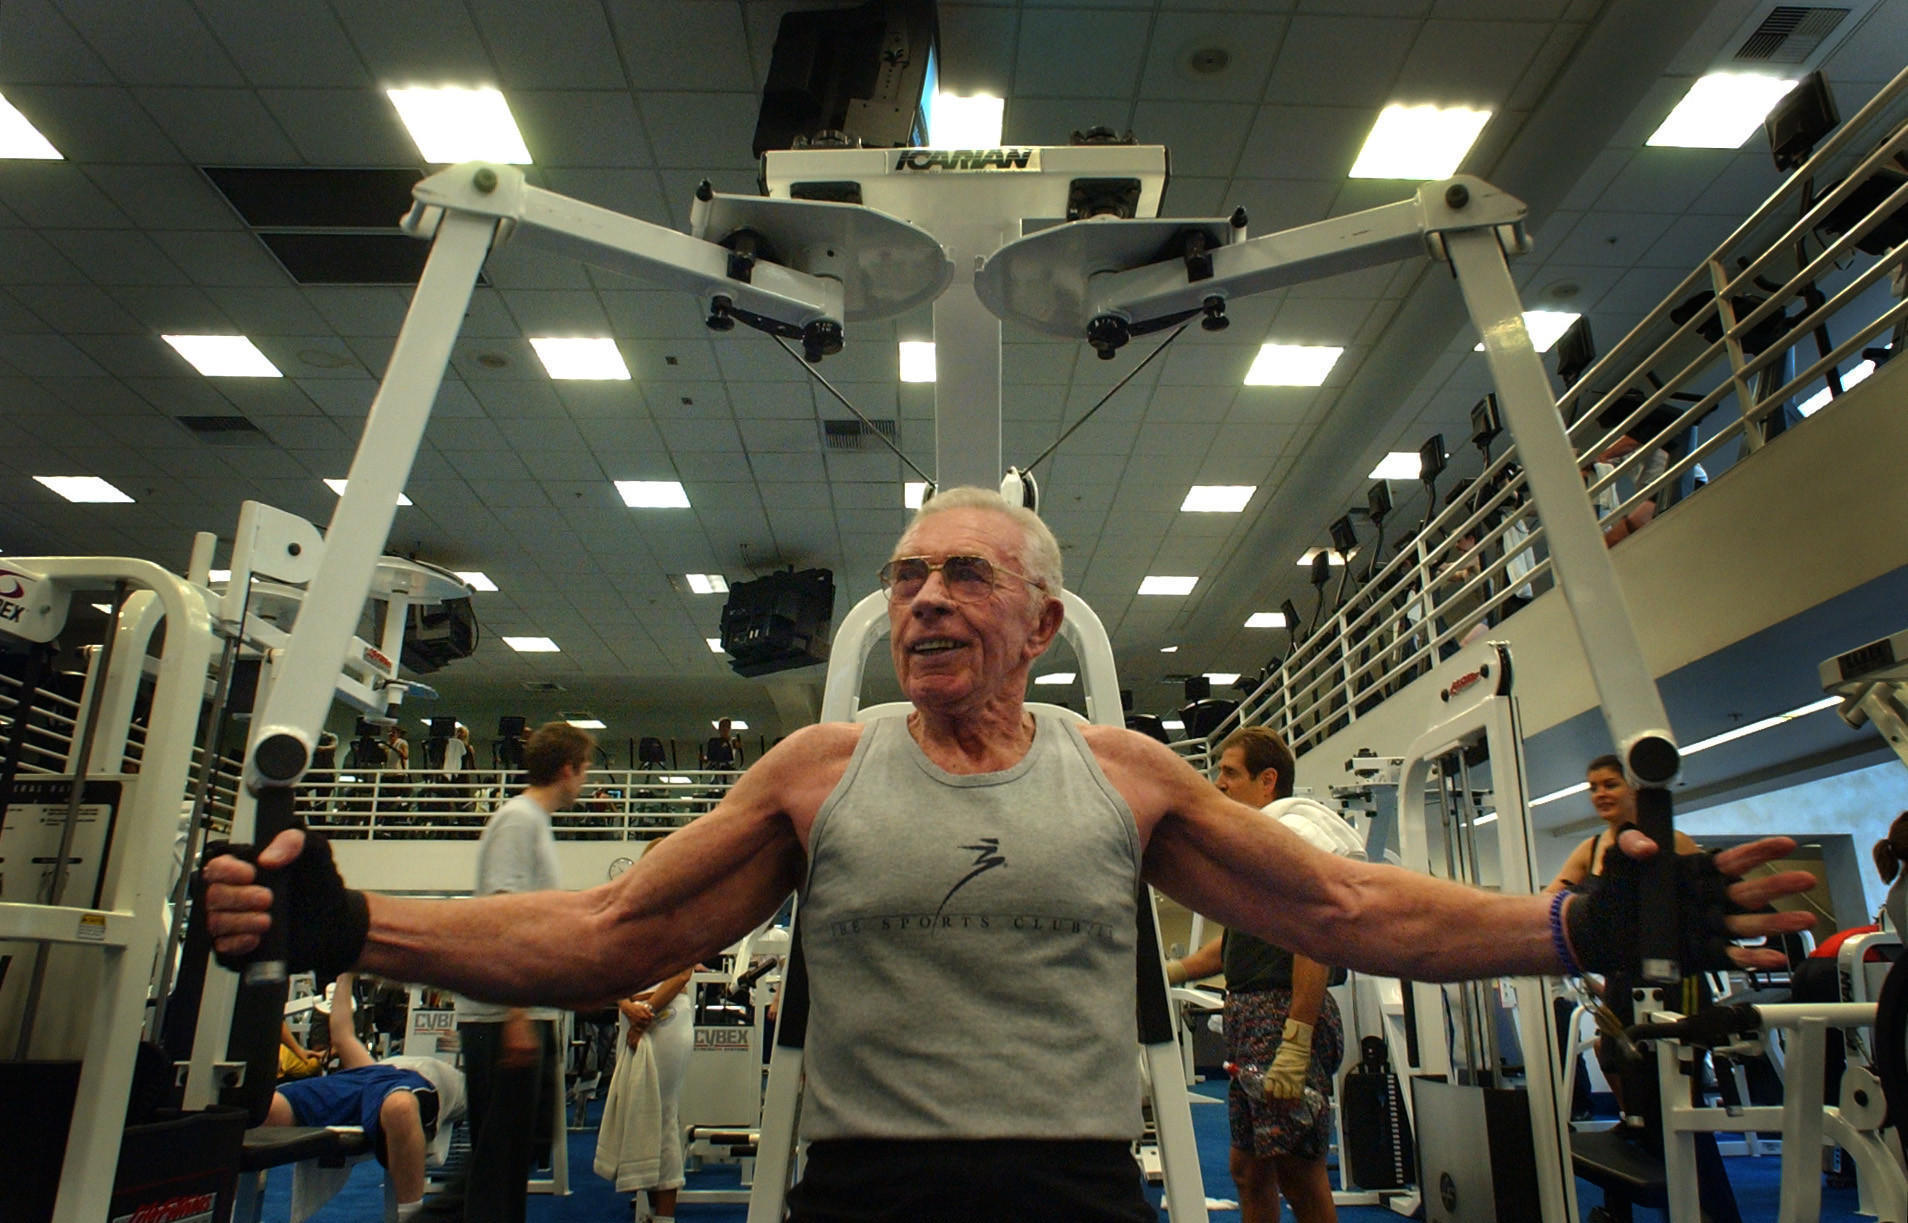 Healthy living: Muscle mass declines with age. Here's what you can do about it